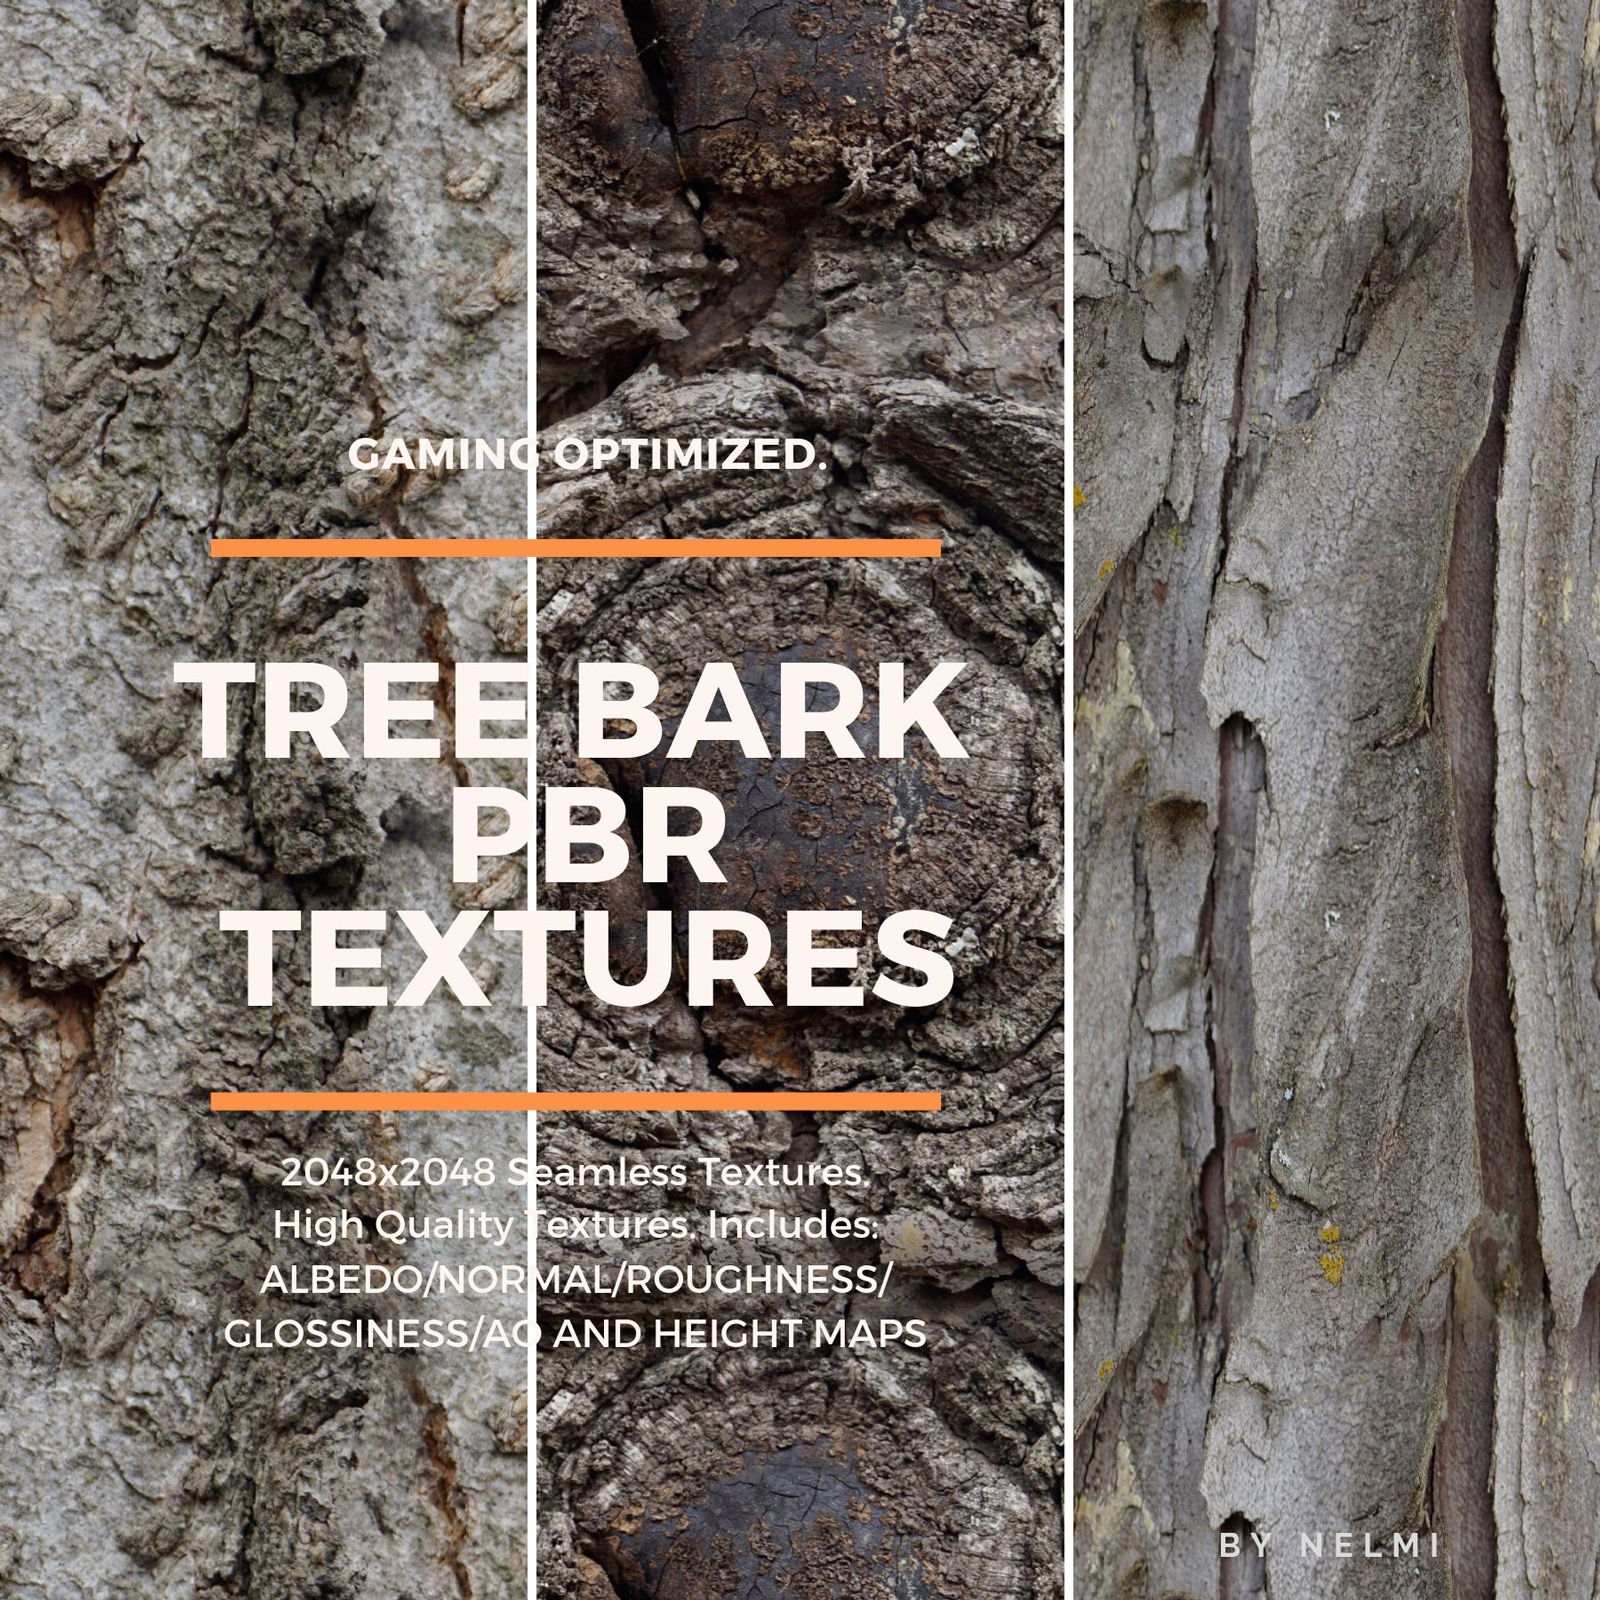 12 PBR Tree Bark Textures with Texture Maps